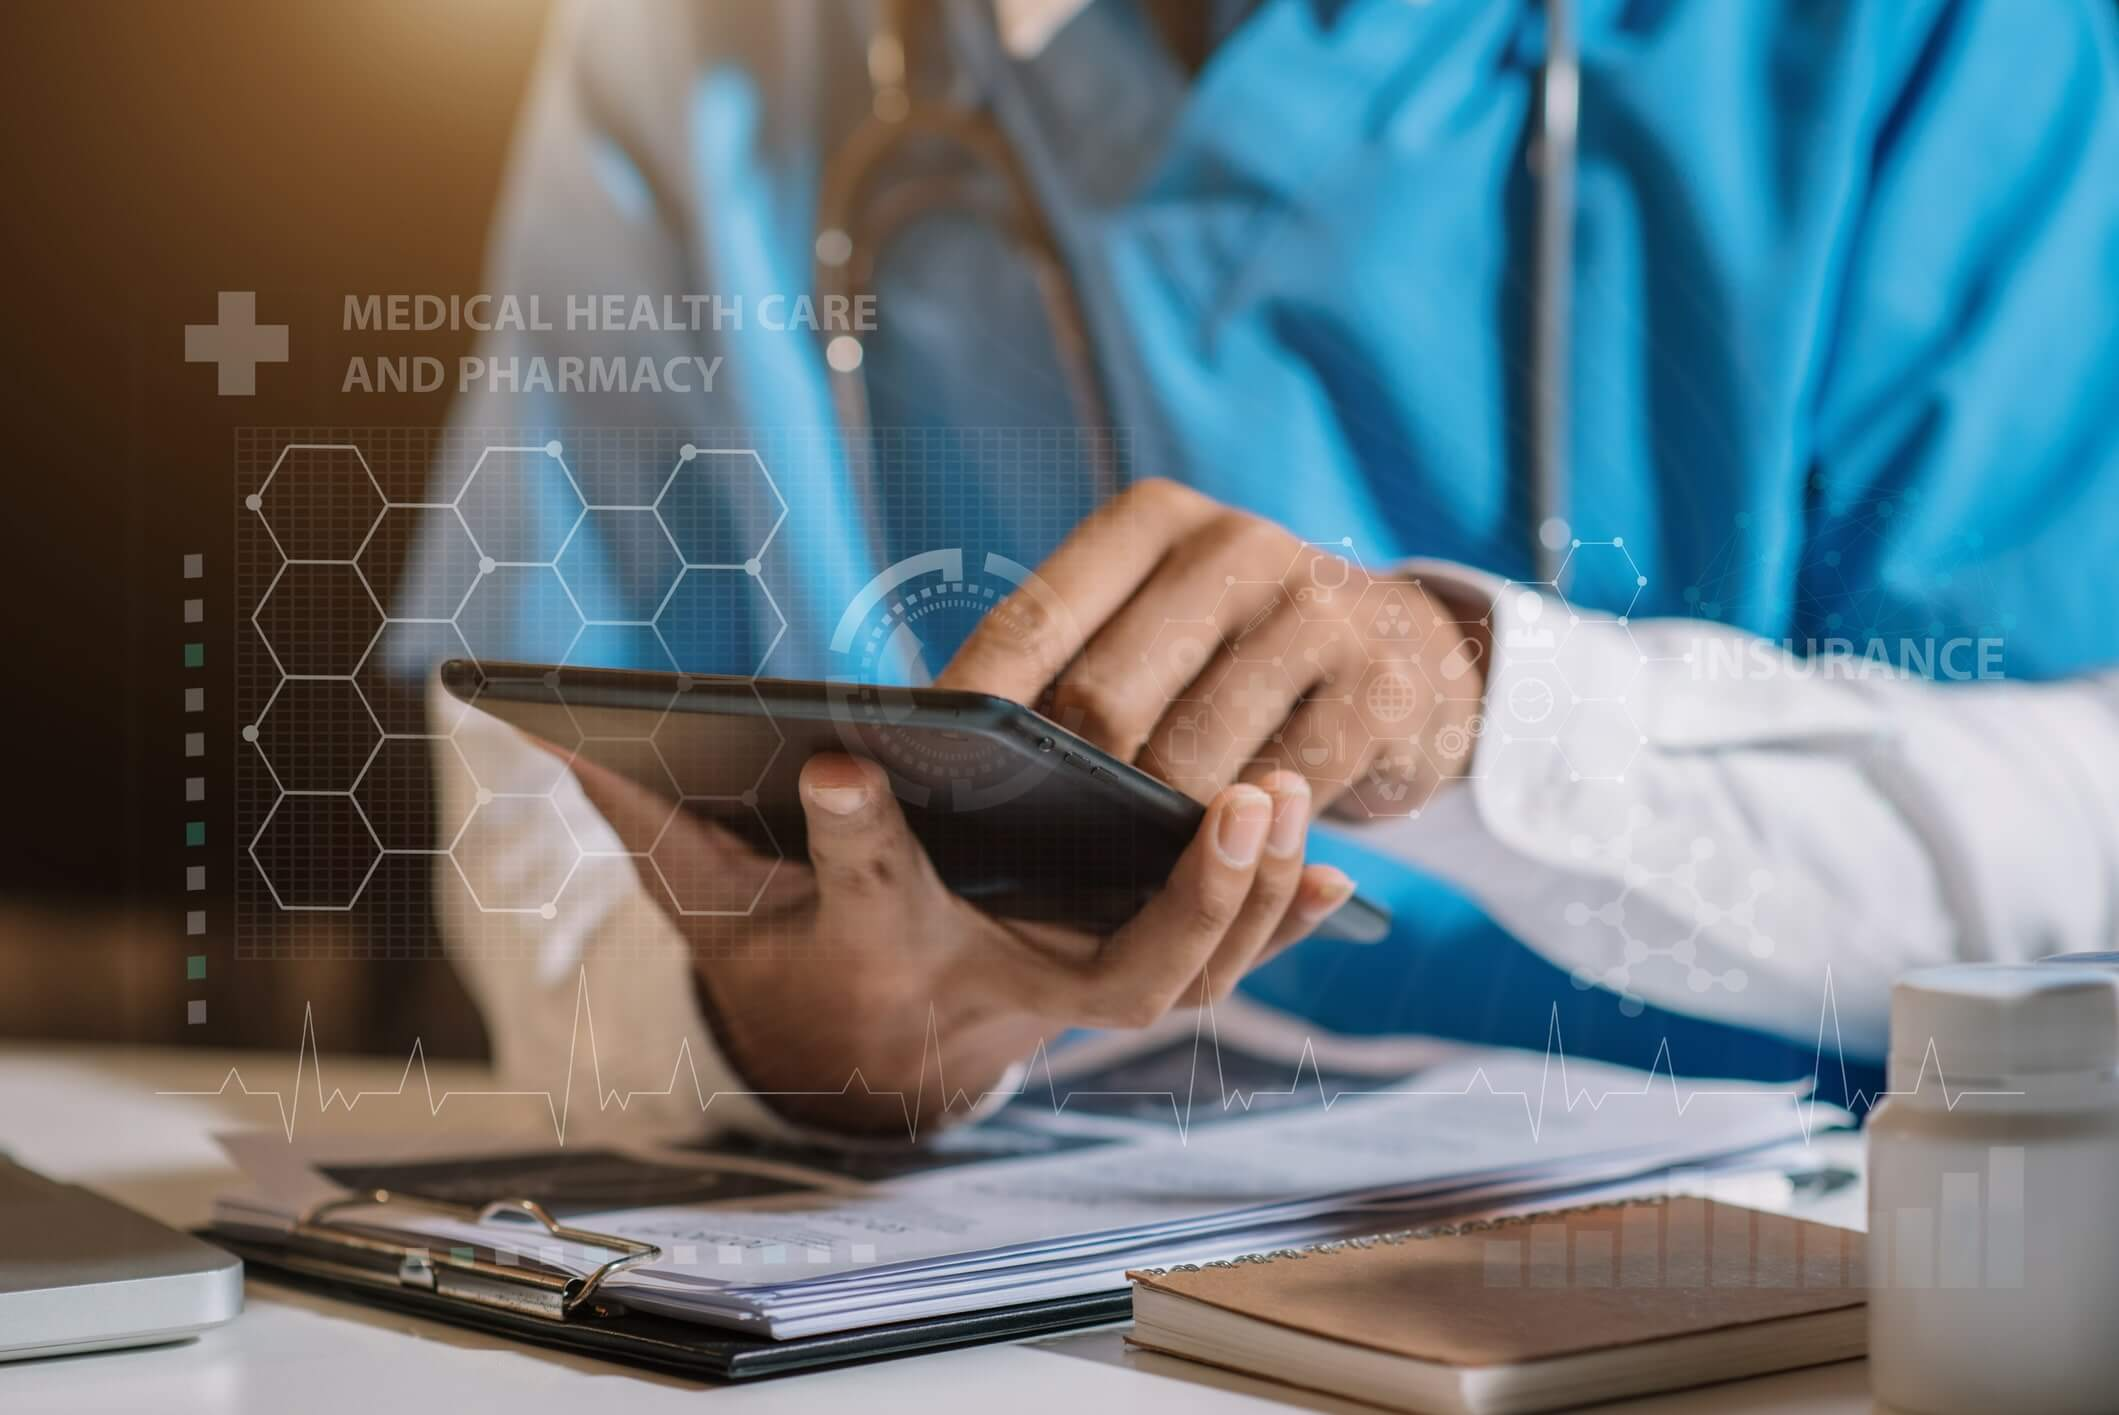 How Meaningful Use and EHR have impacted healthcare